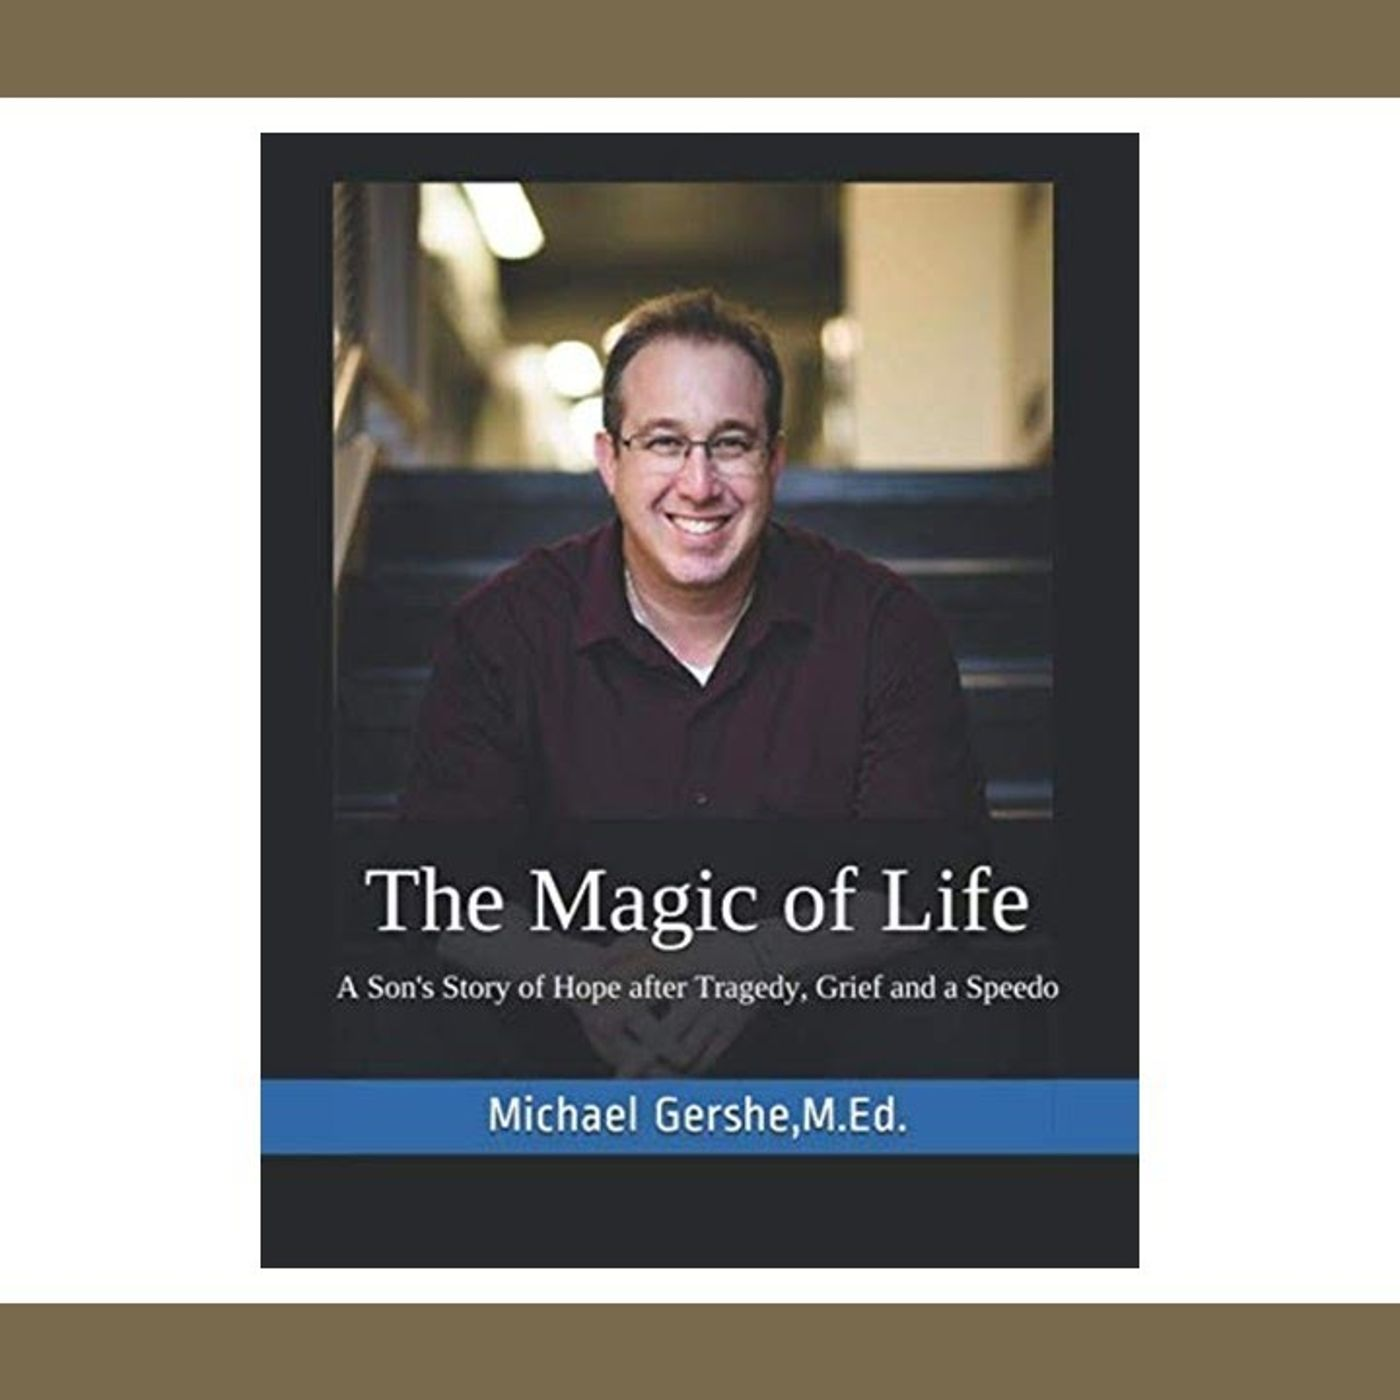 MICHAEL GERSHE EMPOWERMENT AND MORE with guest Greg Smrdel 5_26_20